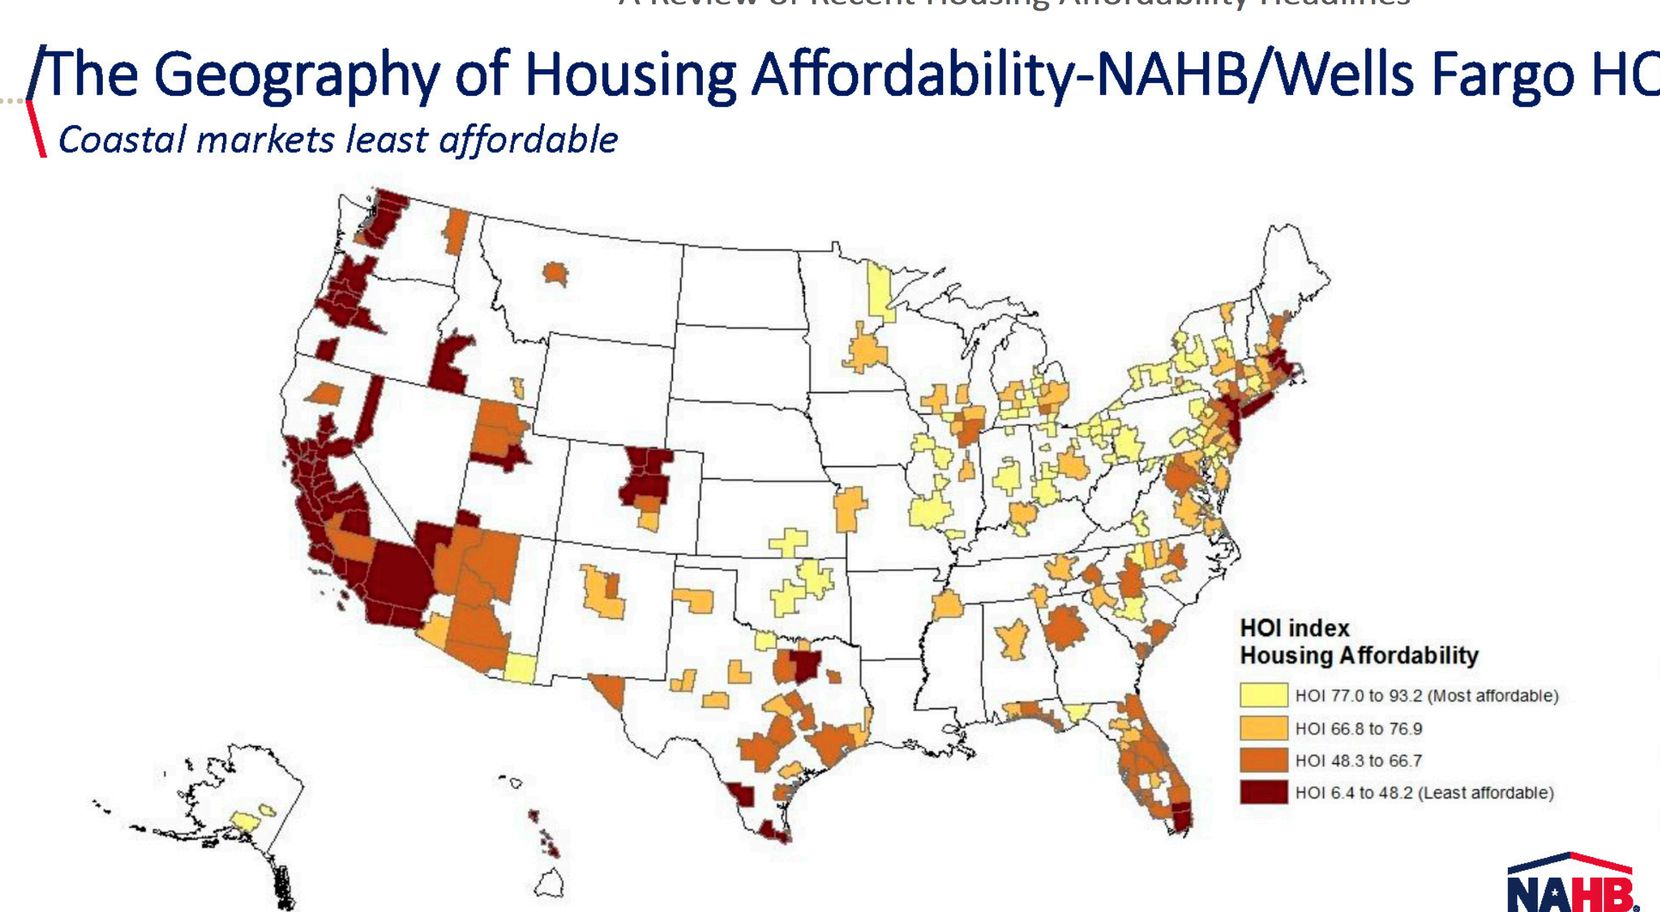 The cities with the dark brown colors are the most unaffordable for home buyers.